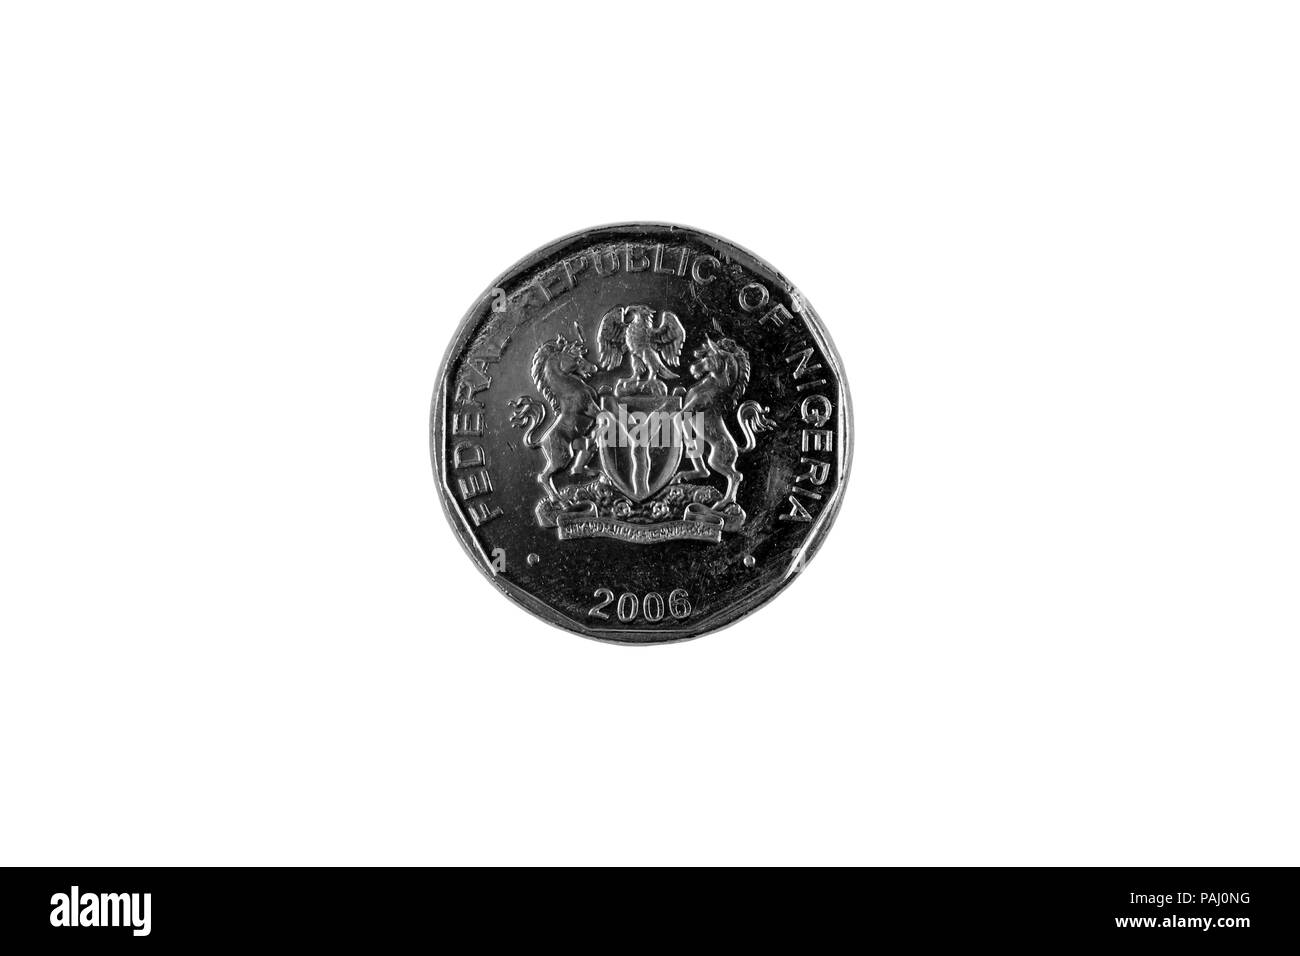 A close up image of a Nigerian 50 Kobo coin isolated on a white background - Stock Image